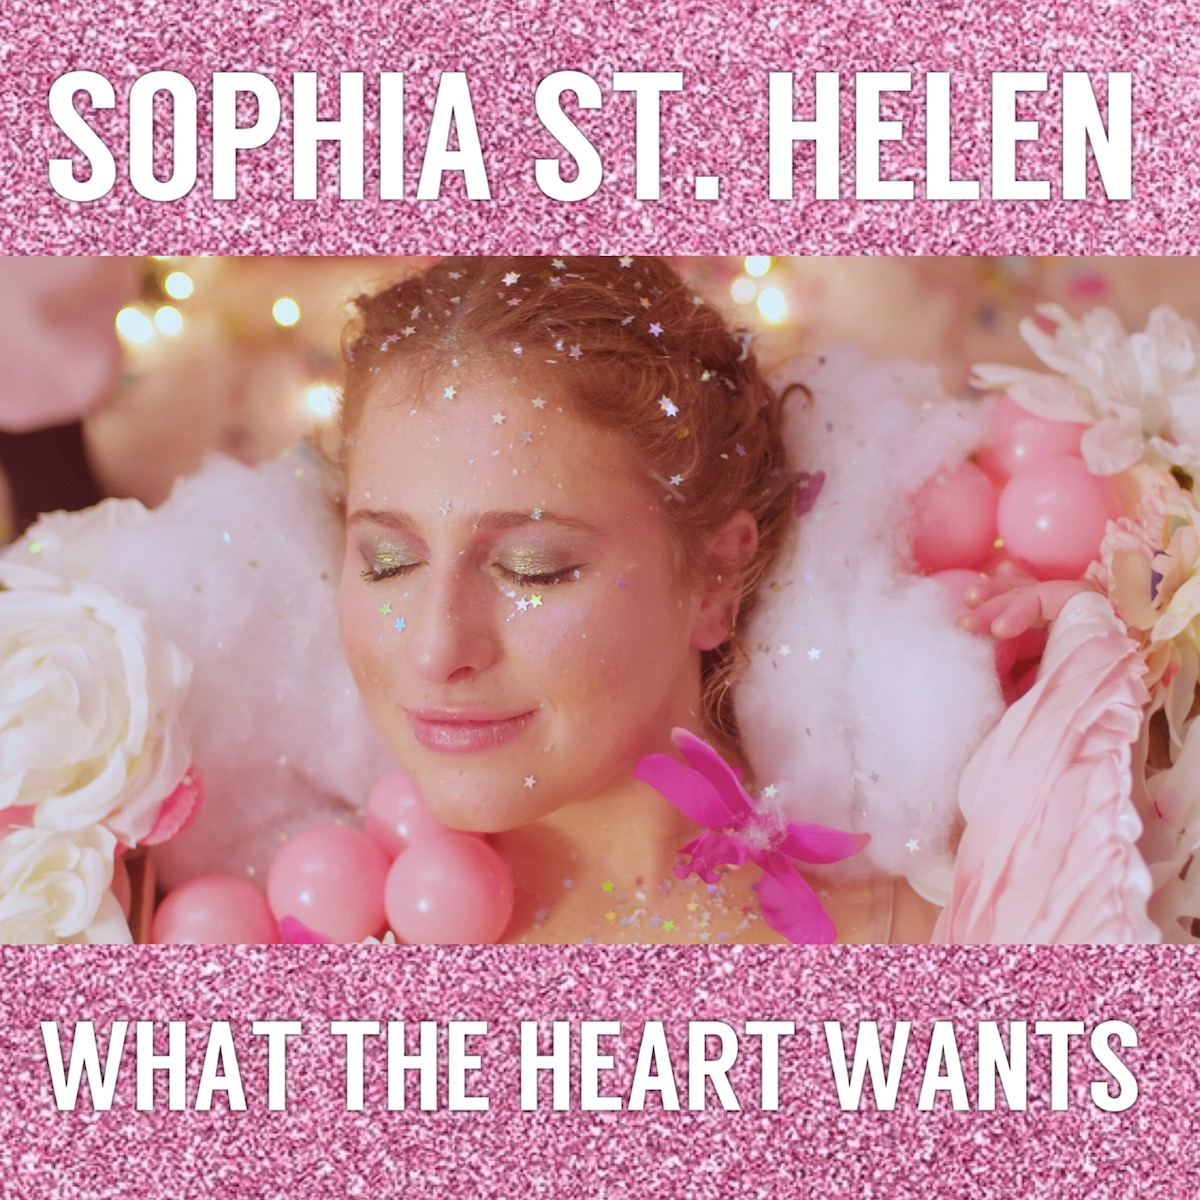 What The Heart Wants - album art